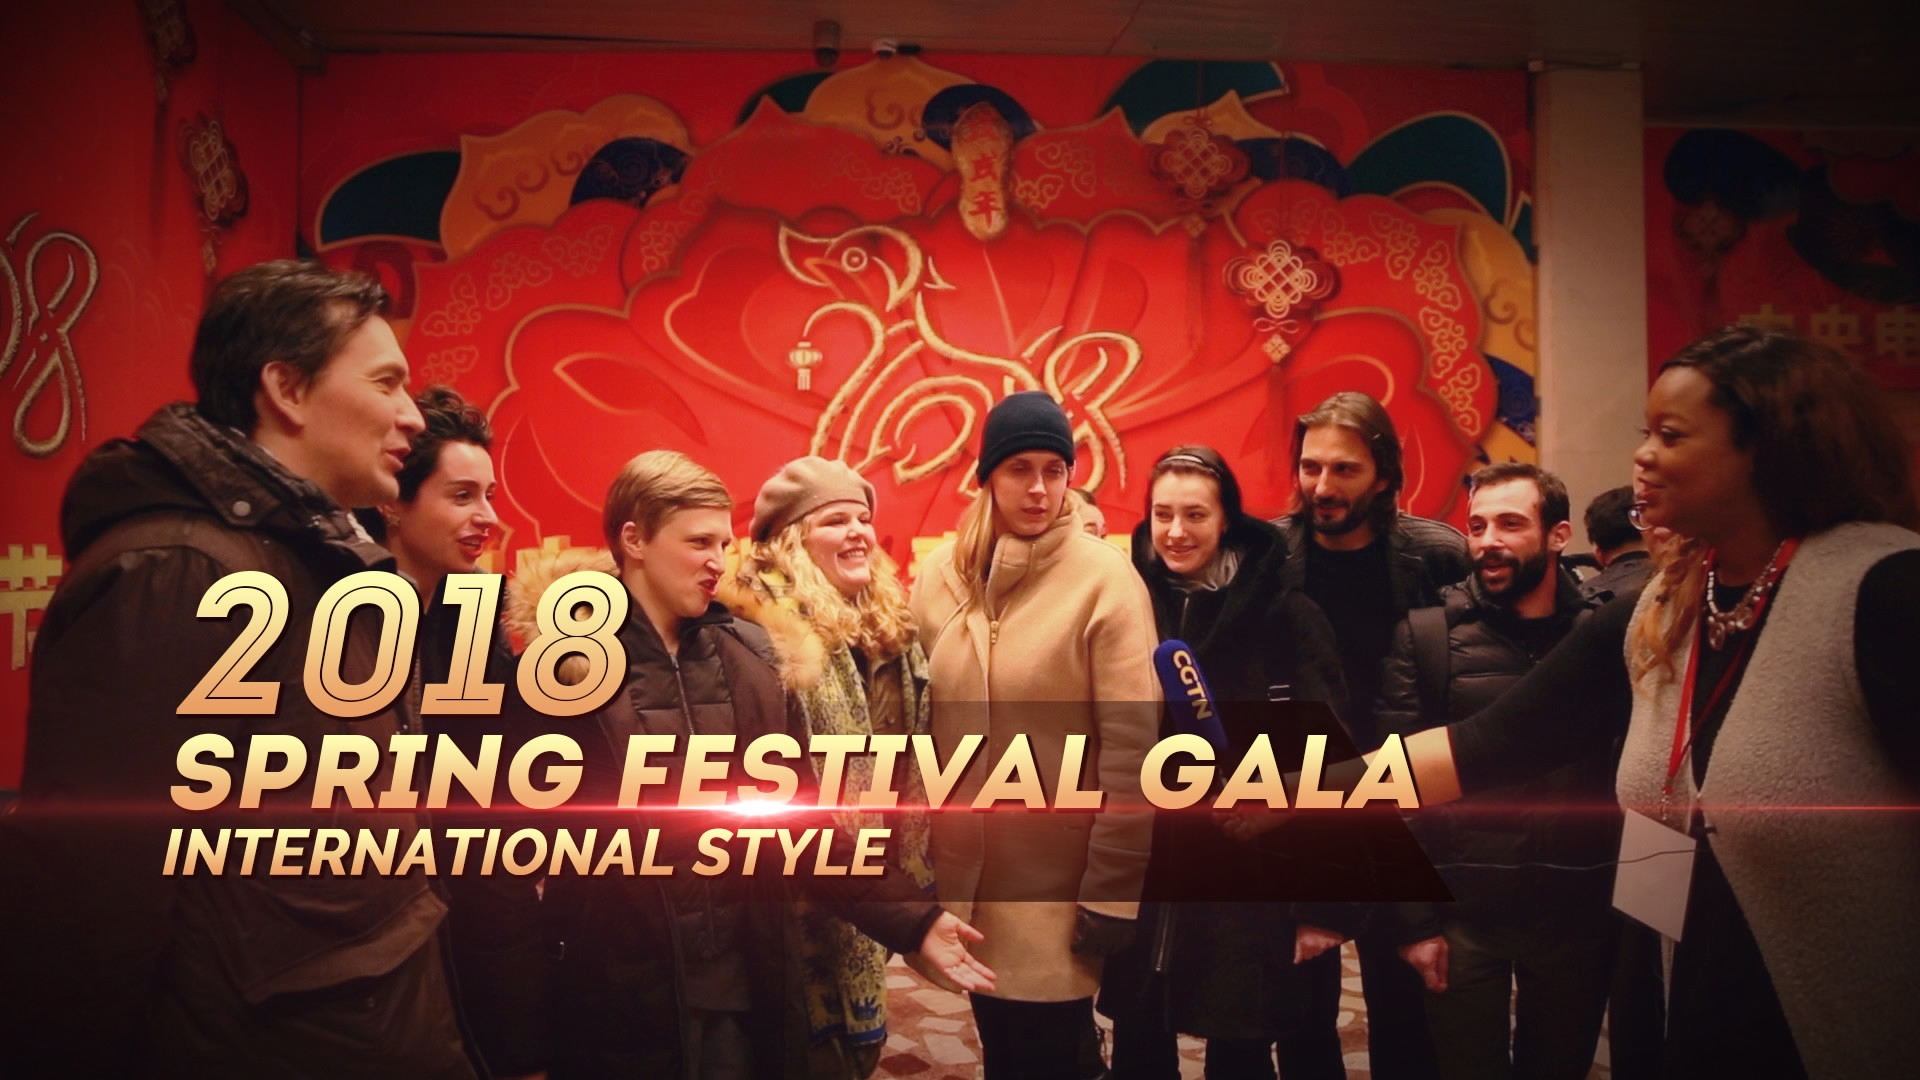 the spring festival gala A skit in the annual lunar new year gala, which is broadcast live to millions, aimed to accentuate african ties but many found the portrayals offensive.